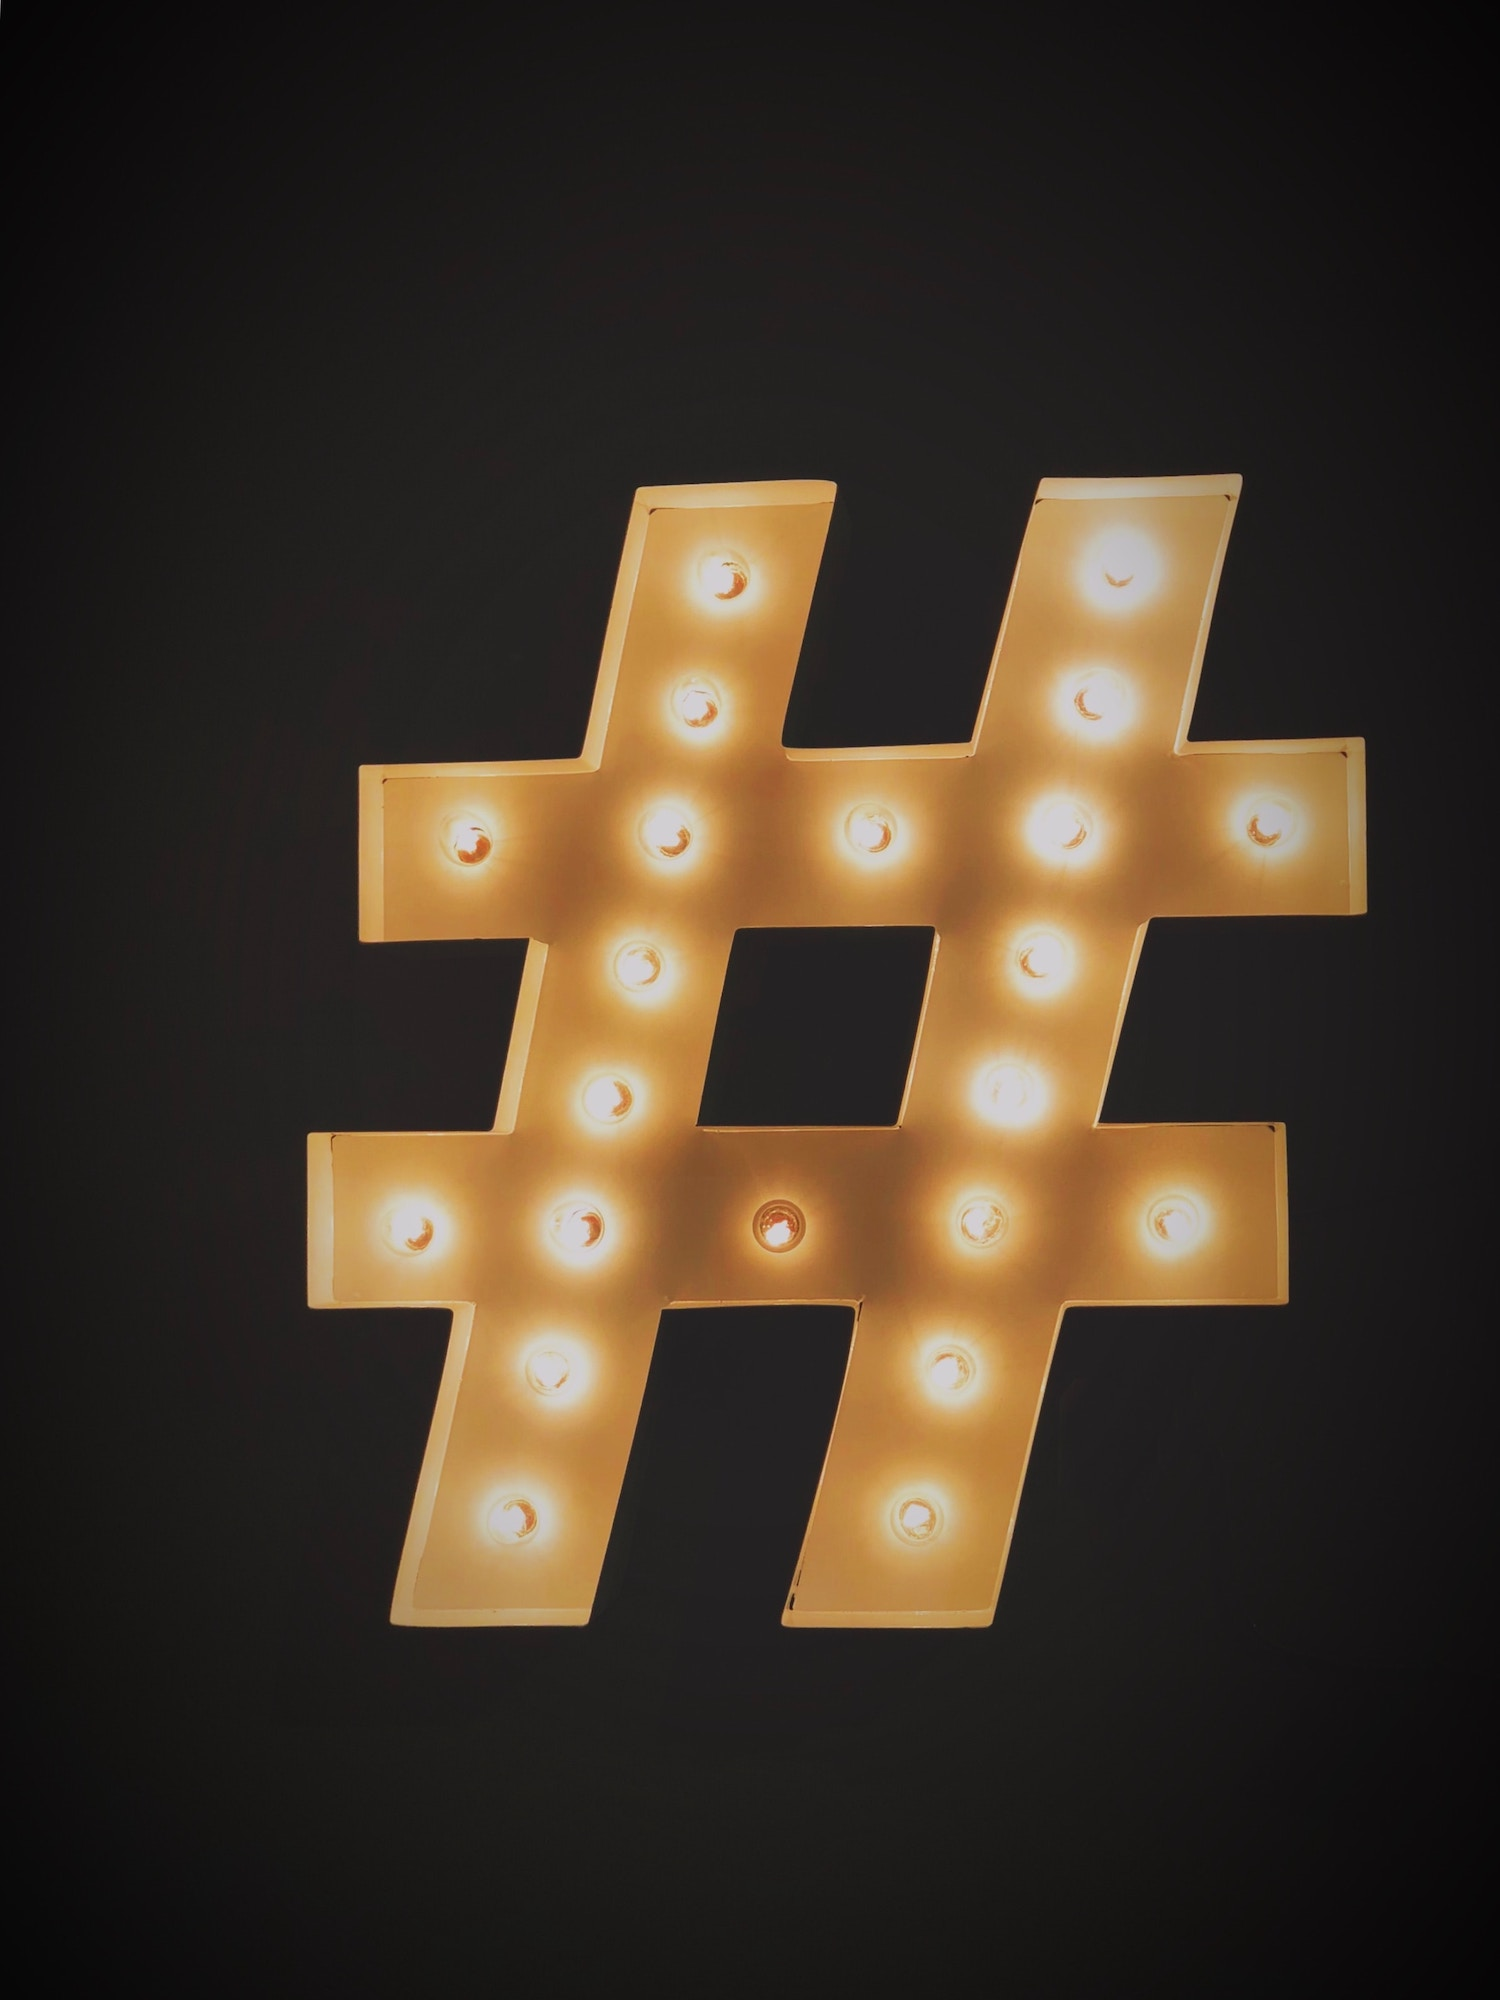 How to use Hashtags and Which Ones to Use